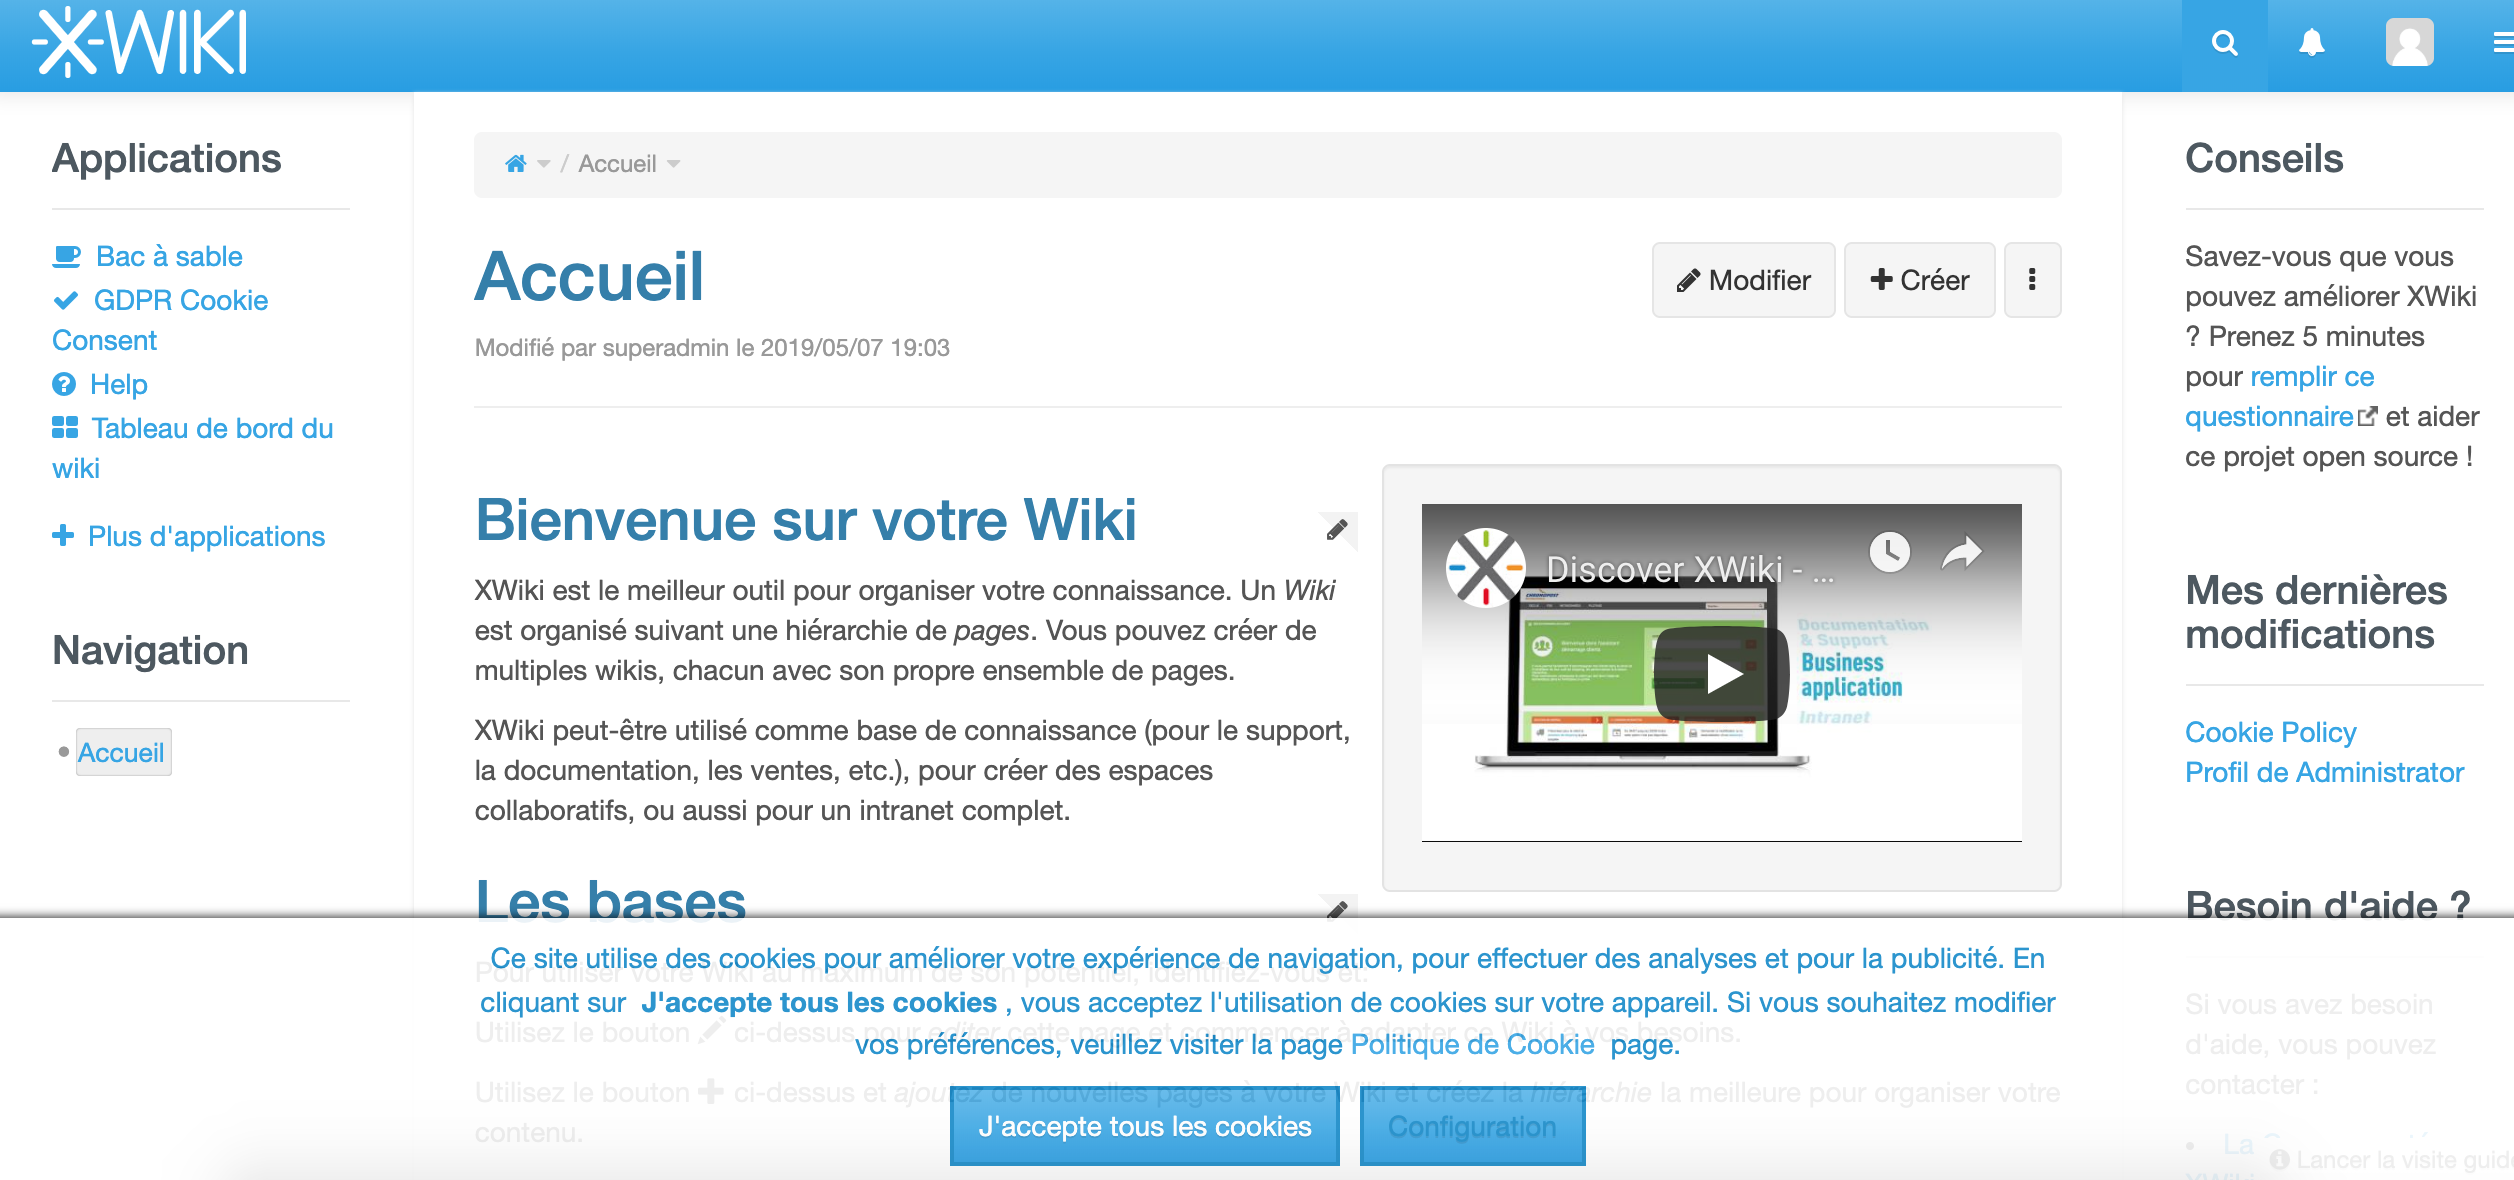 user-experience-website-xwiki-cookie-policy.png